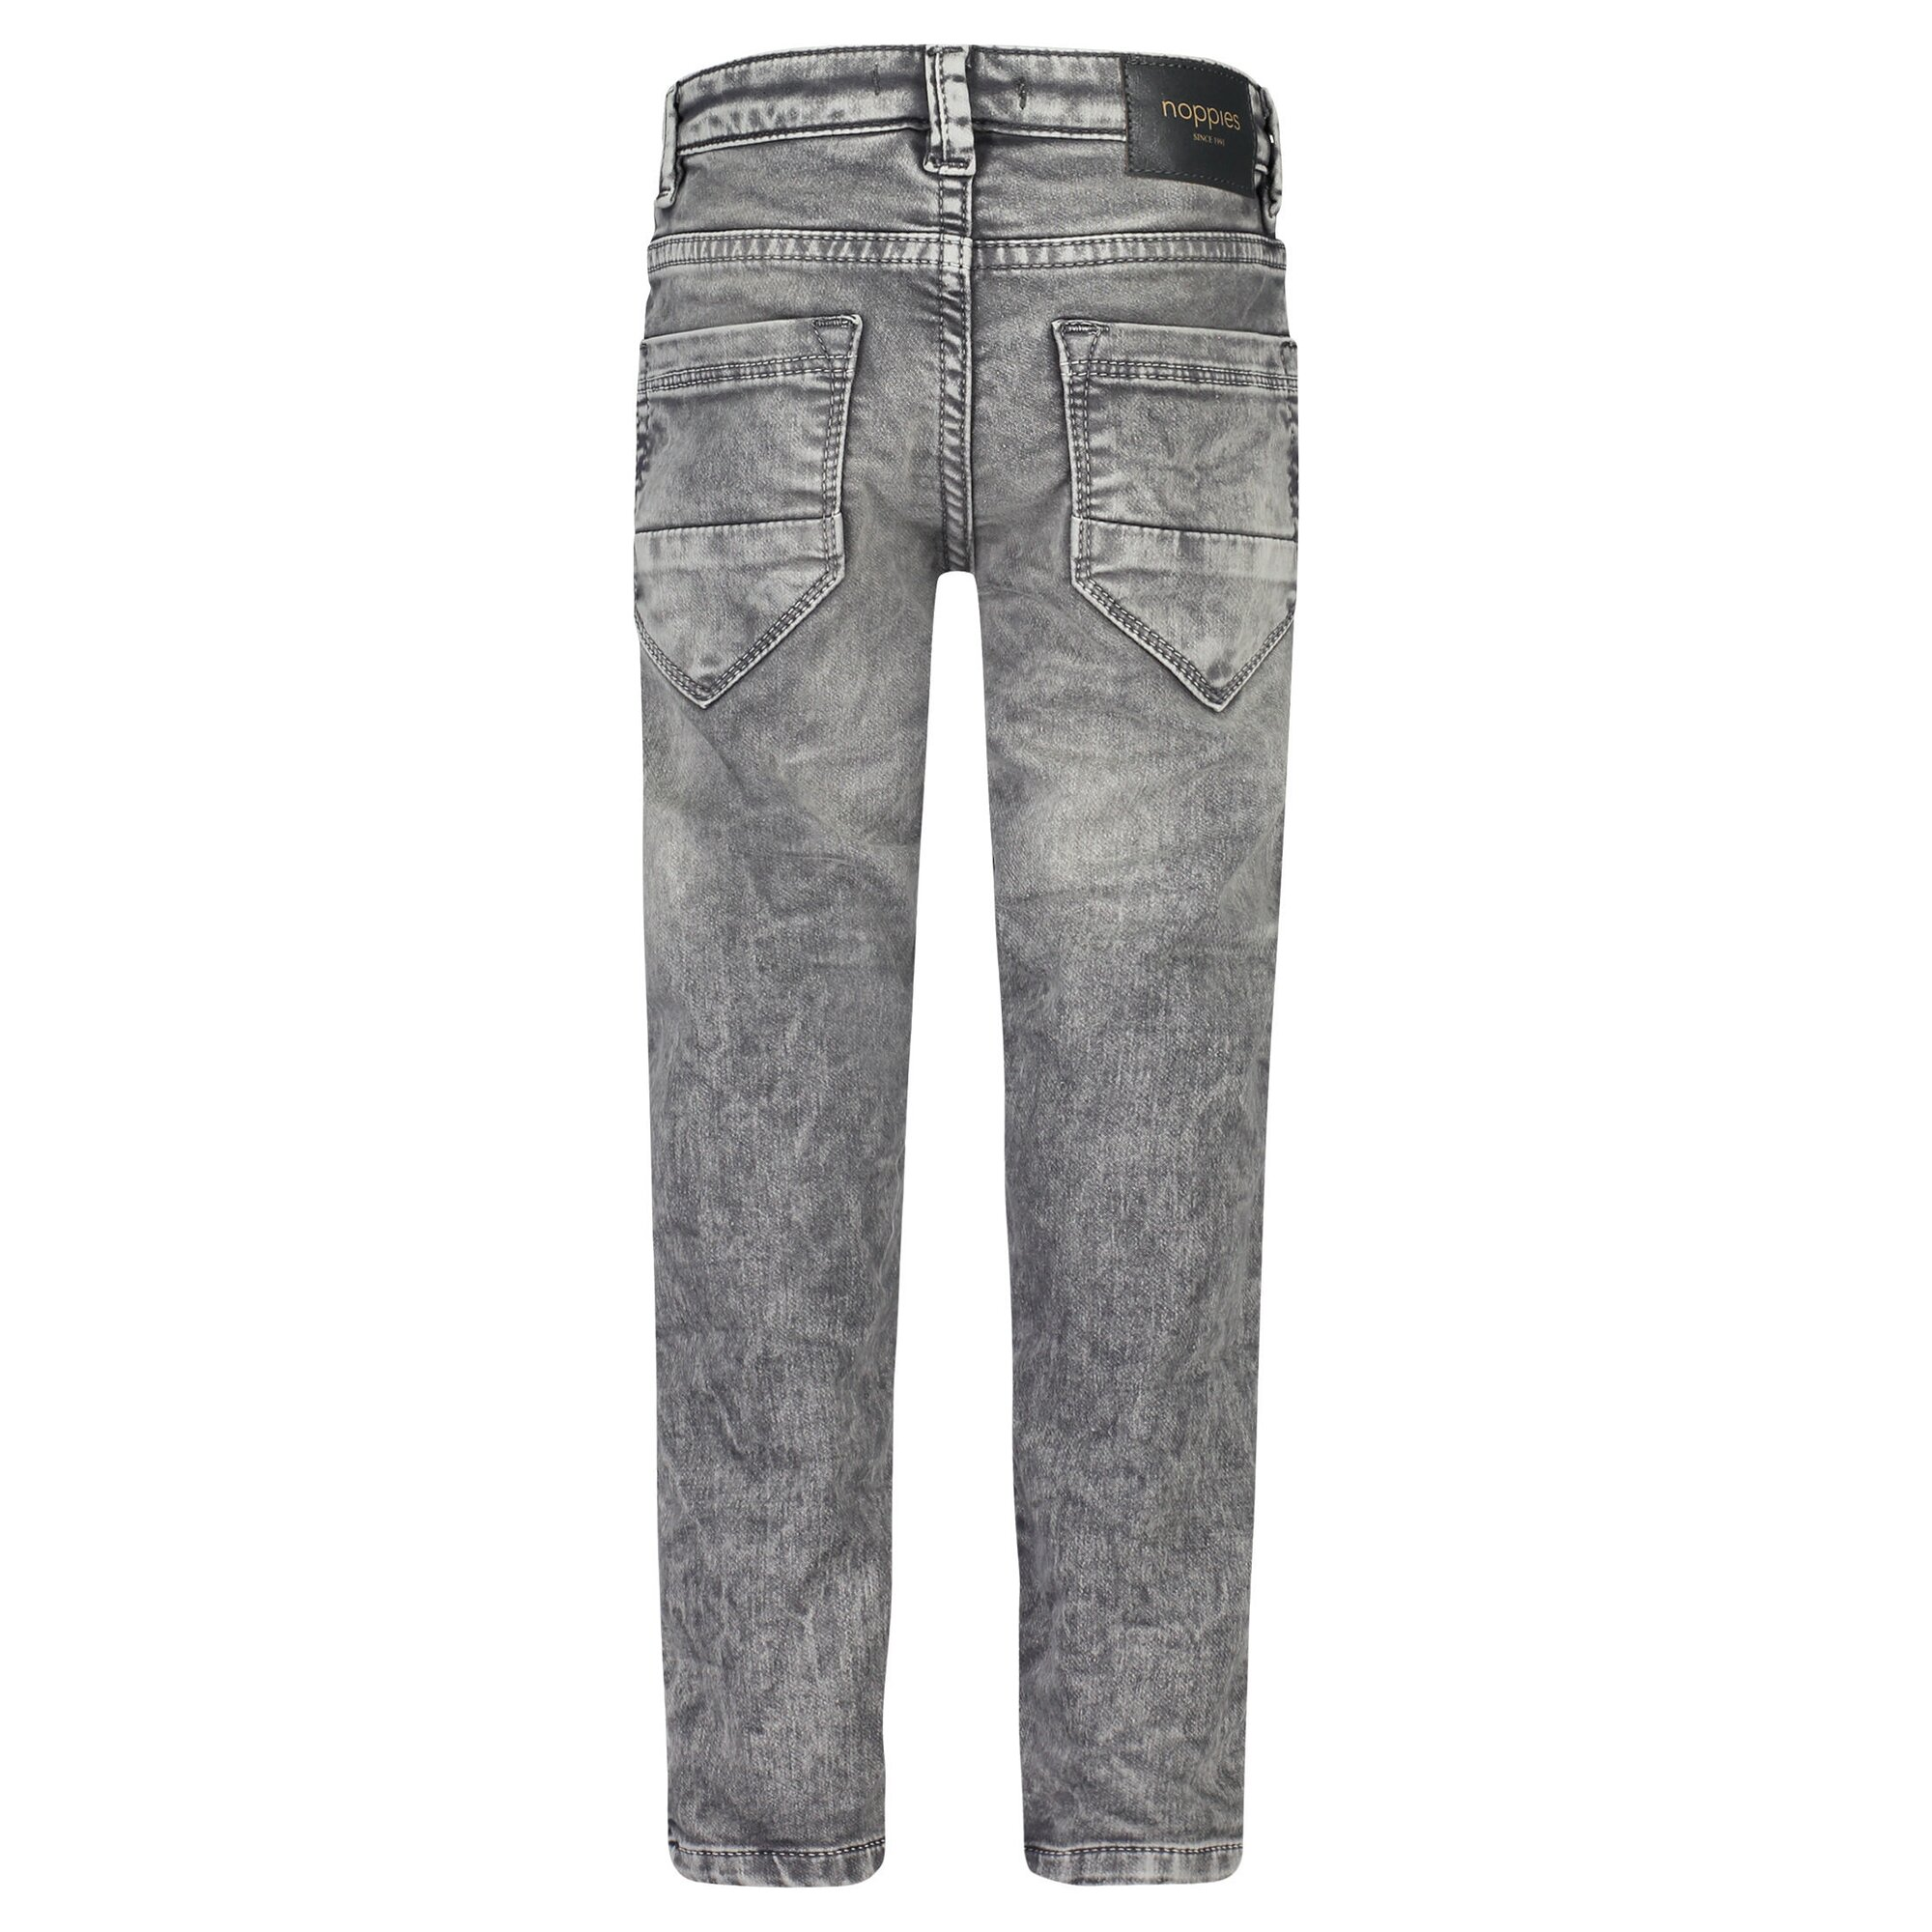 noppies-jeans-tari